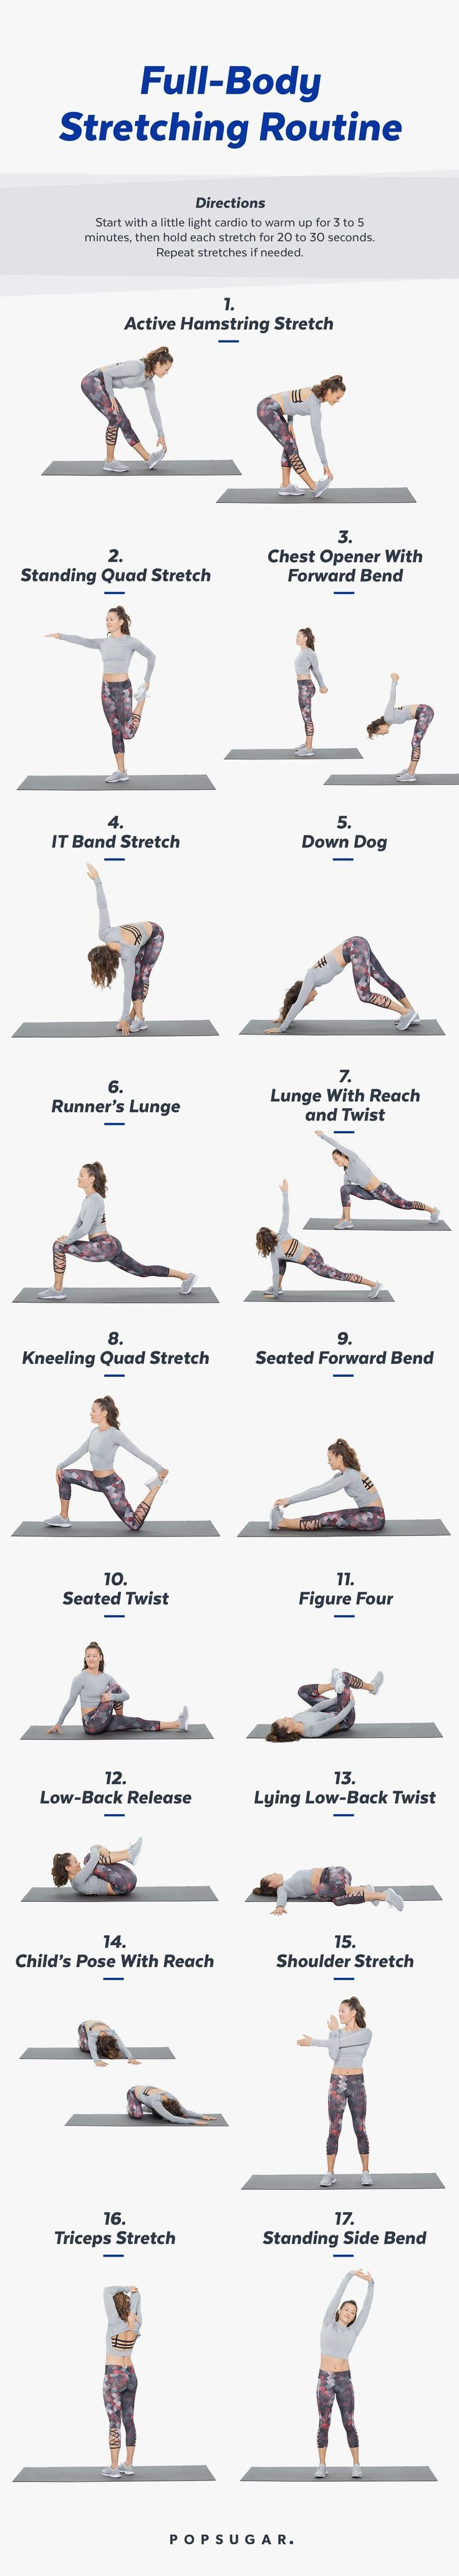 Printable Full-Body Stretch Routine For Chill Days http://www.weightlossjumpstart.net/weight-loss-motivational-music/